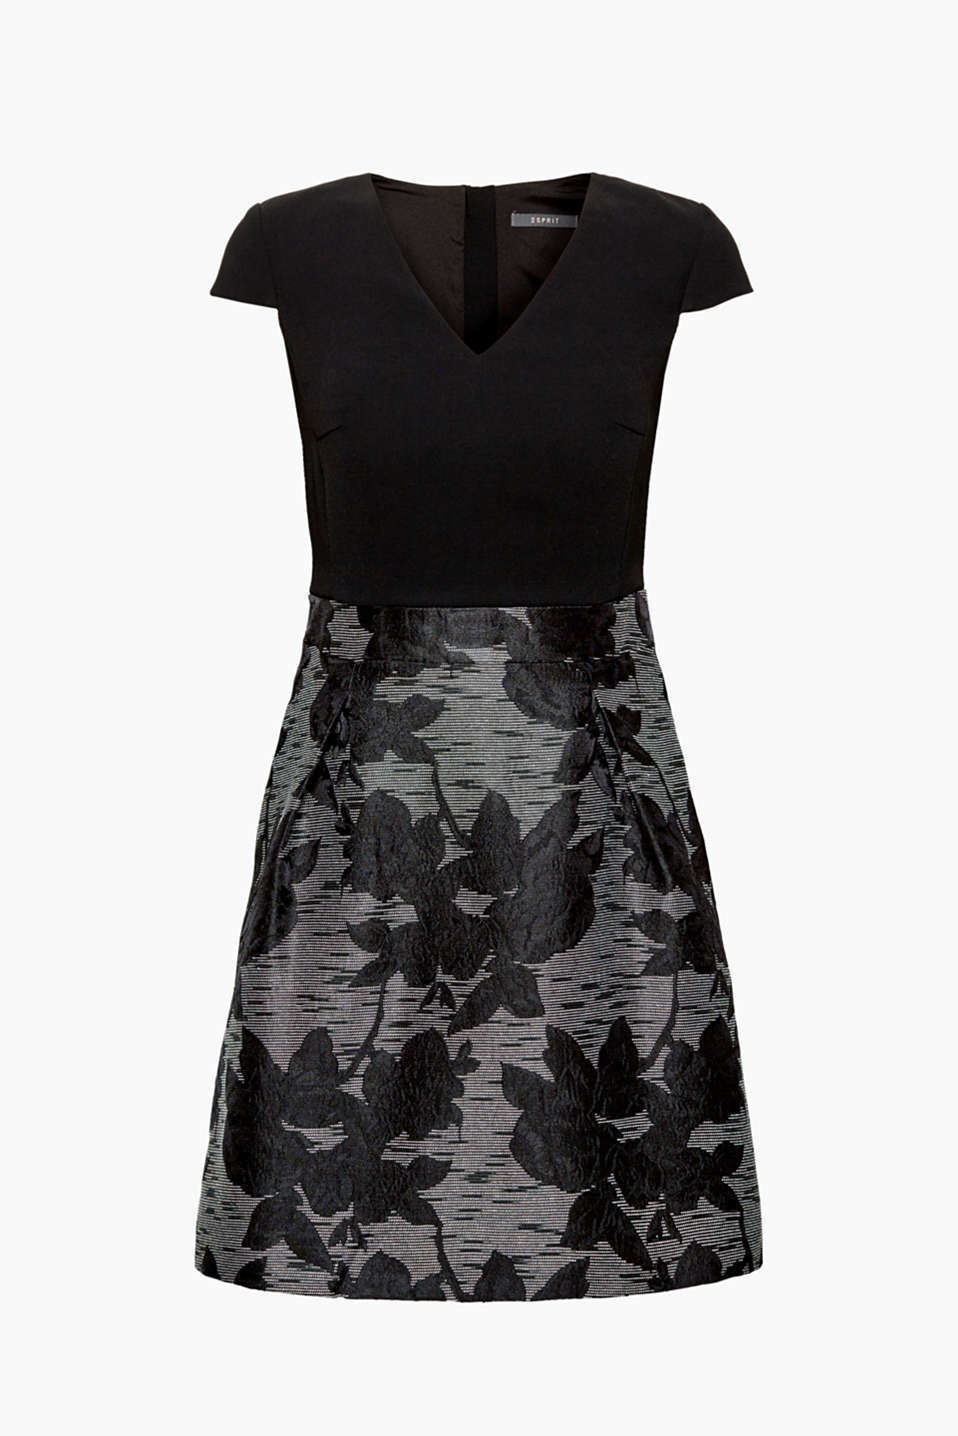 This flowing dress with luscious jacquard flowers on the wide skirt is a gem for formal occasions